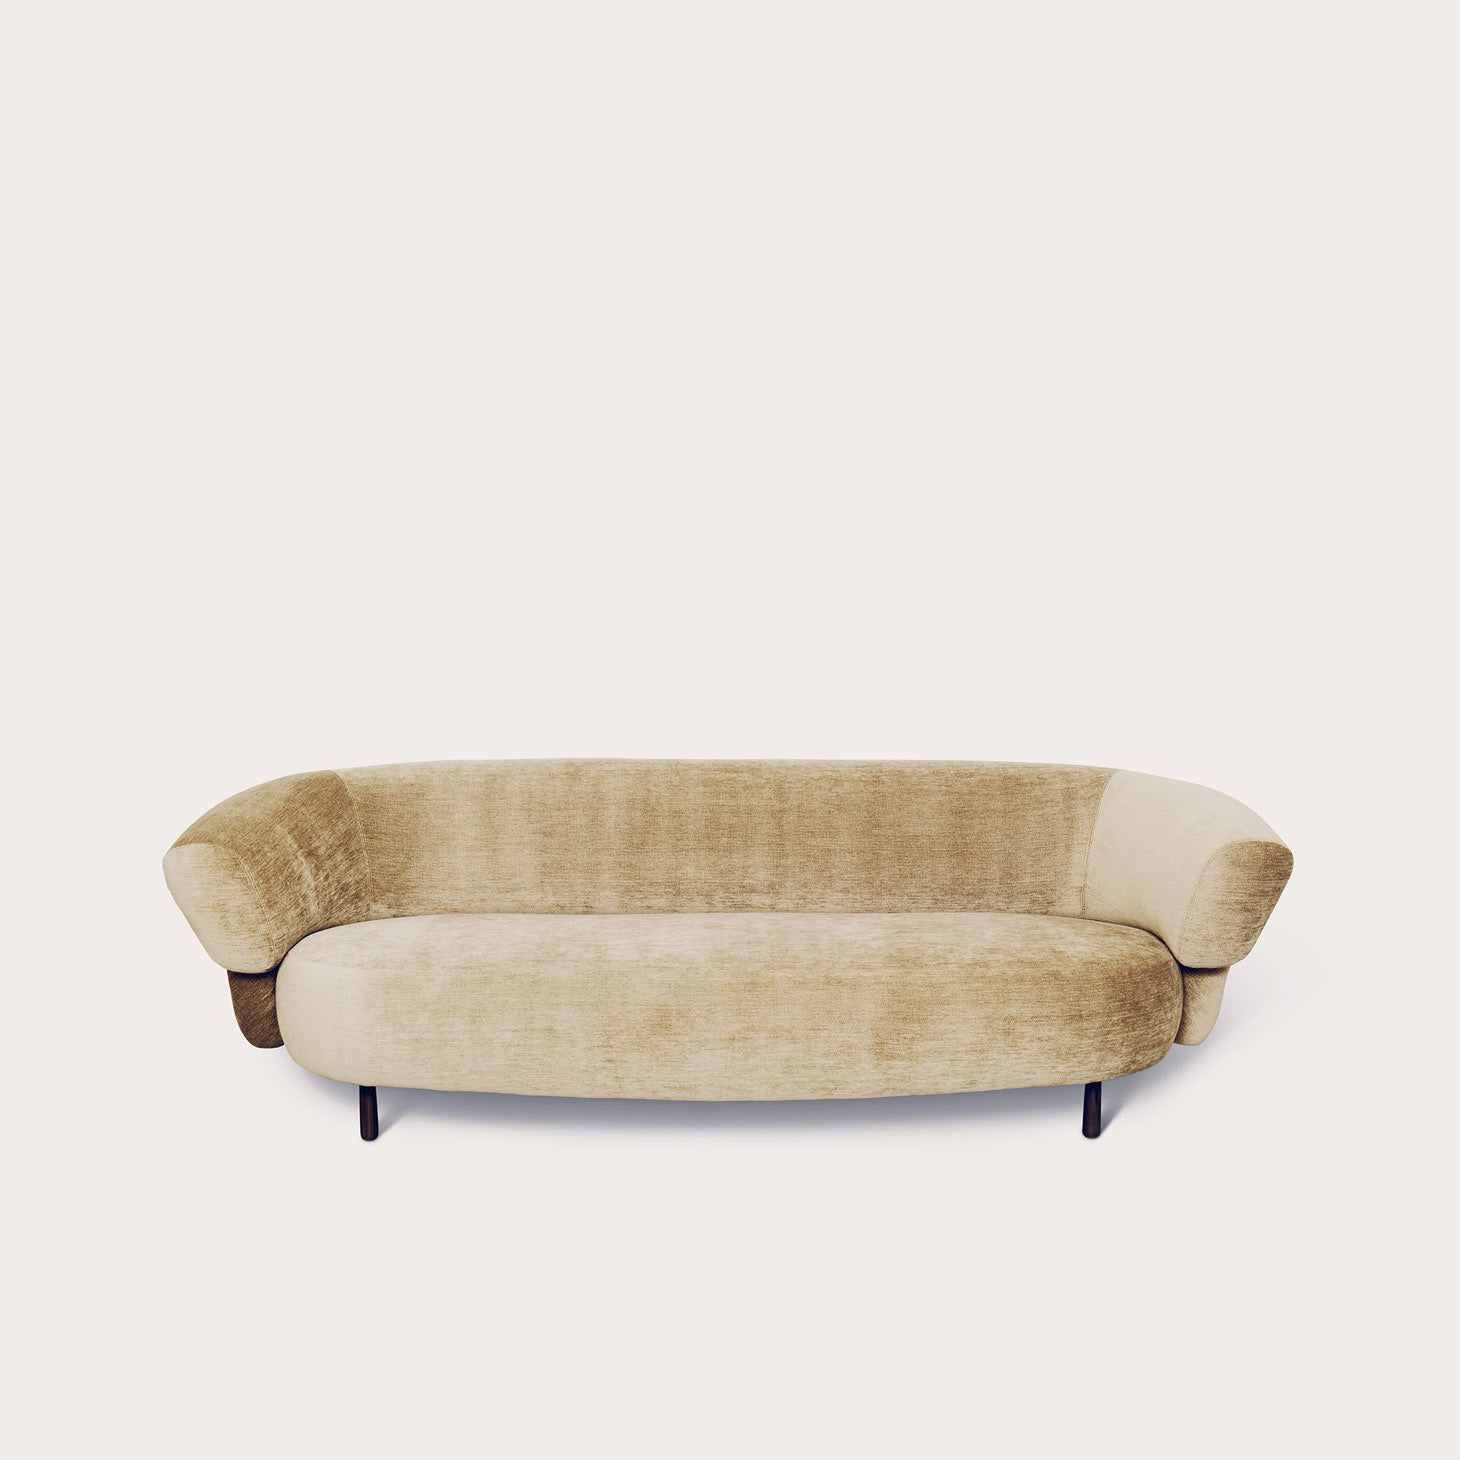 ANA Seating Christophe Delcourt Designer Furniture Sku: 008-240-10102